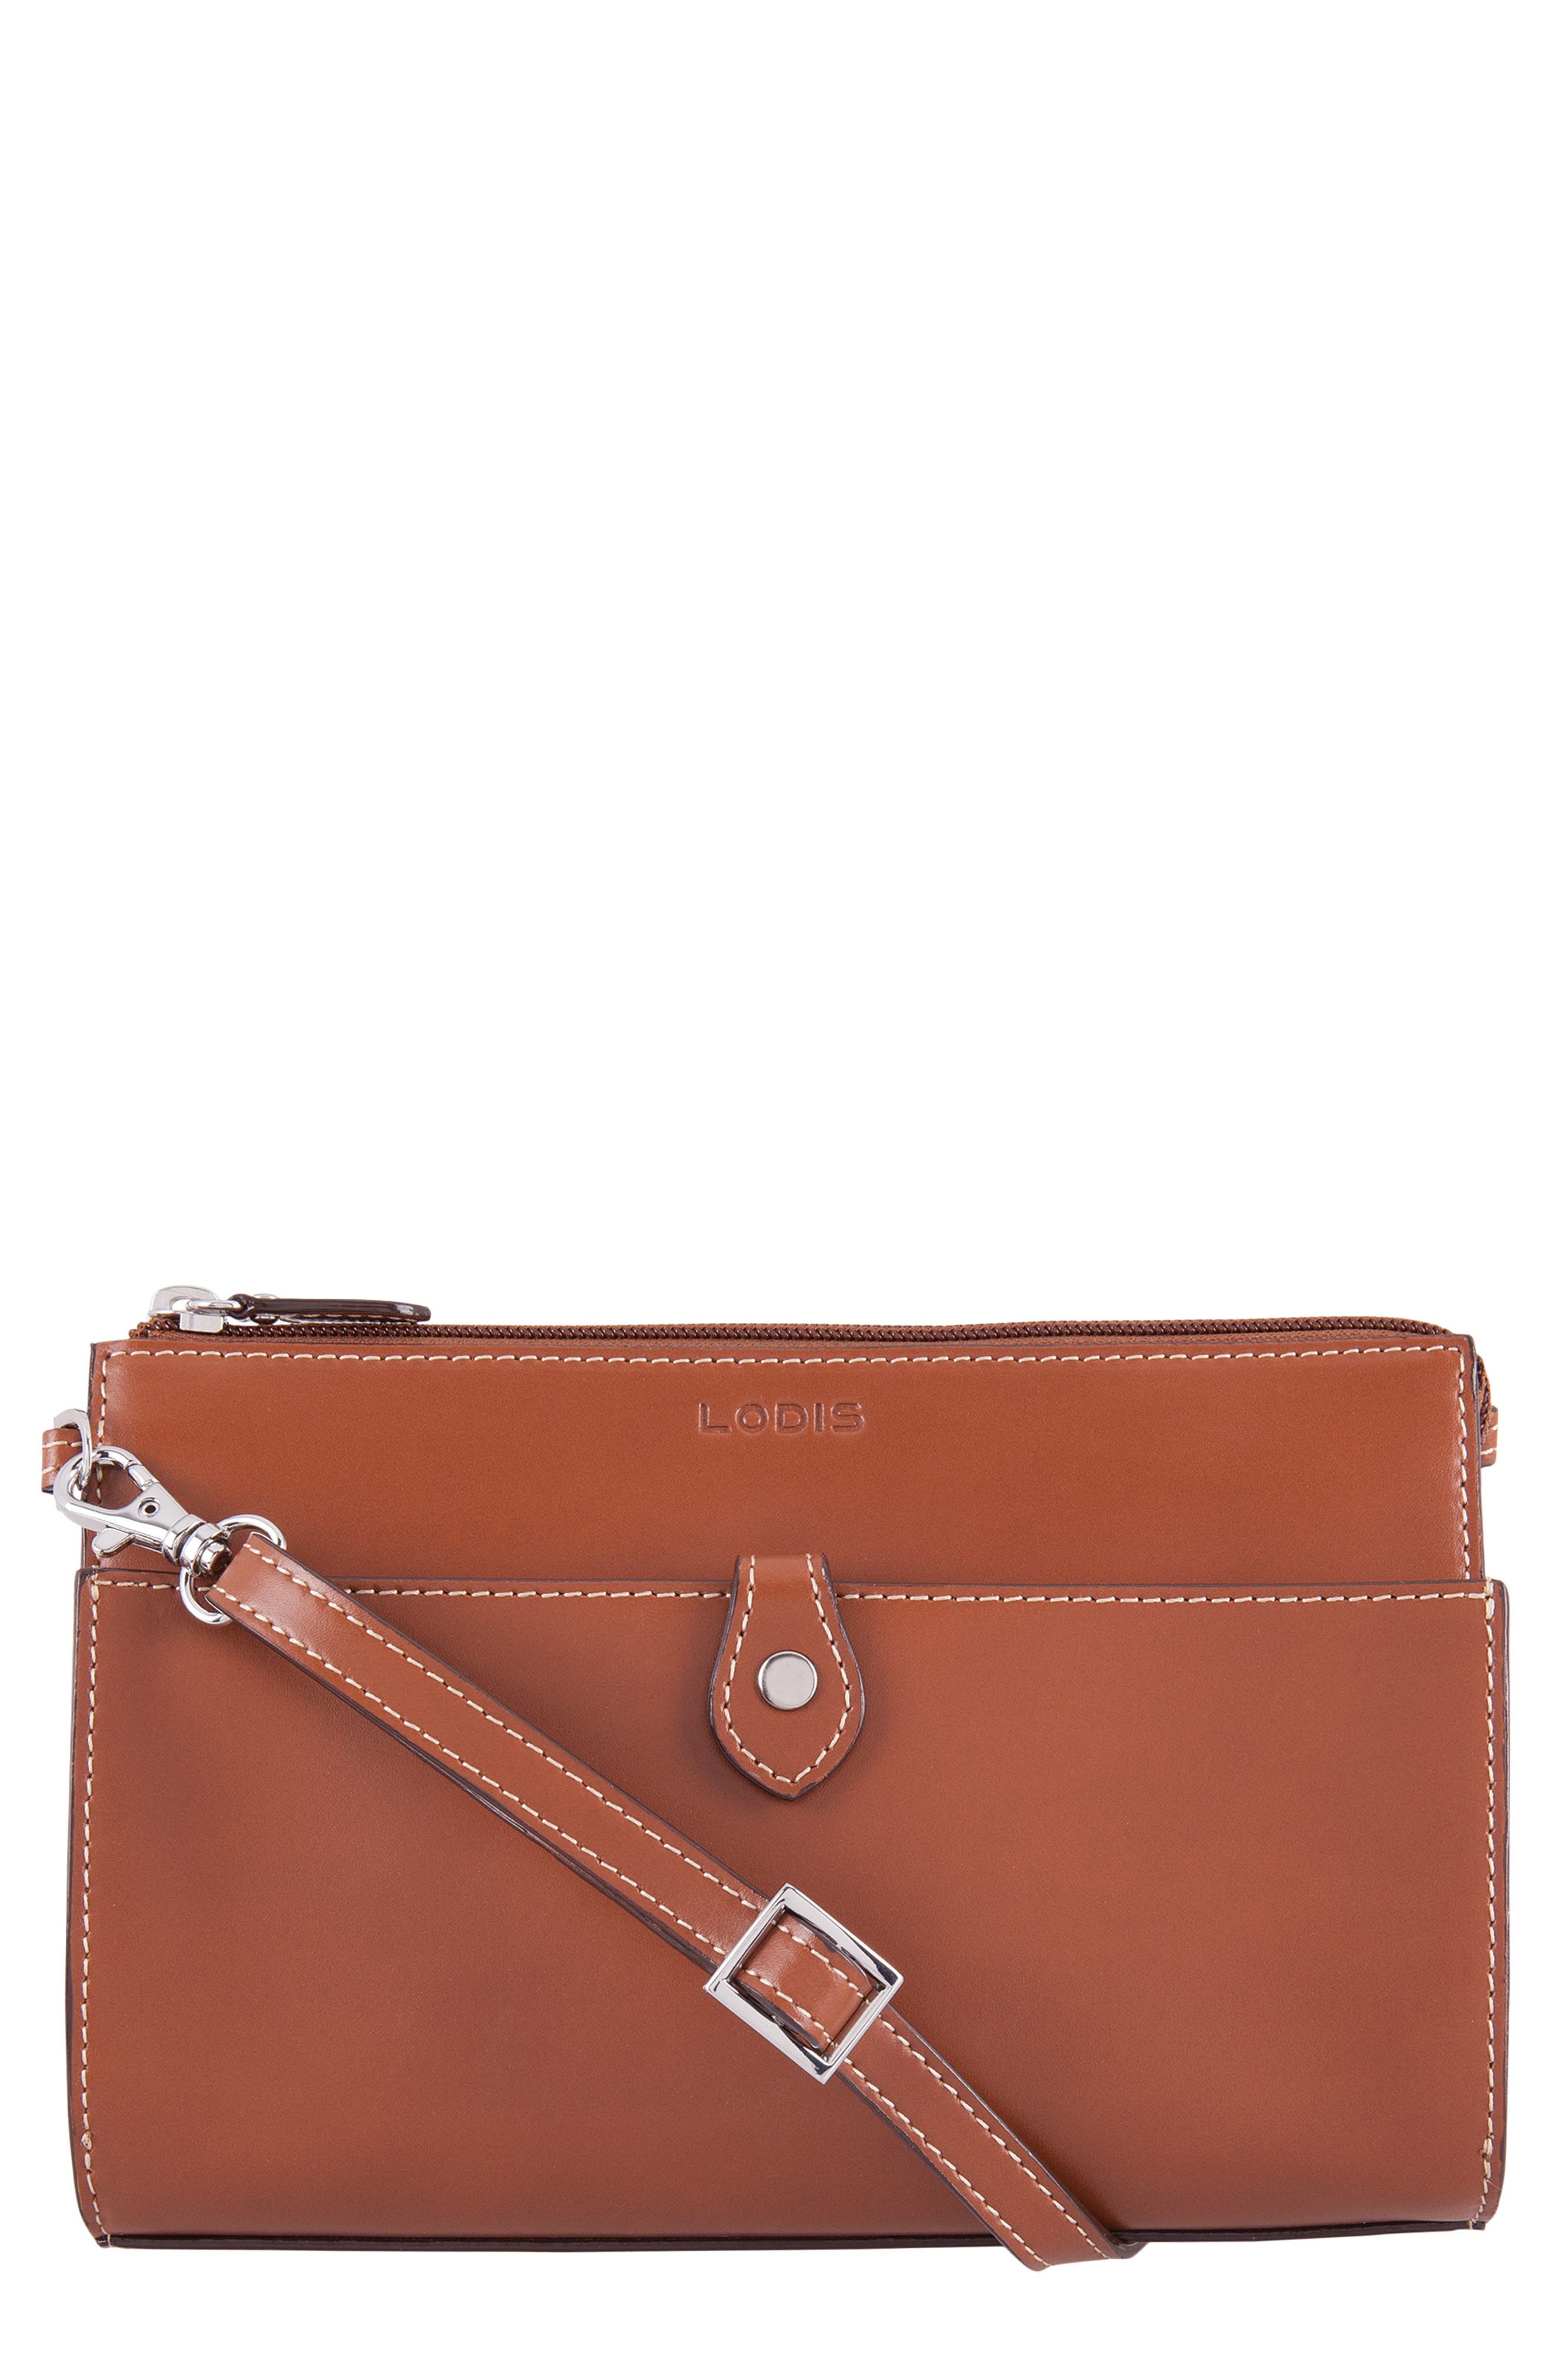 Audrey Under Lock & Key Vicky Convertible Leather Crossbody Bag,                         Main,                         color, SEQUOIA/ PAPAYA